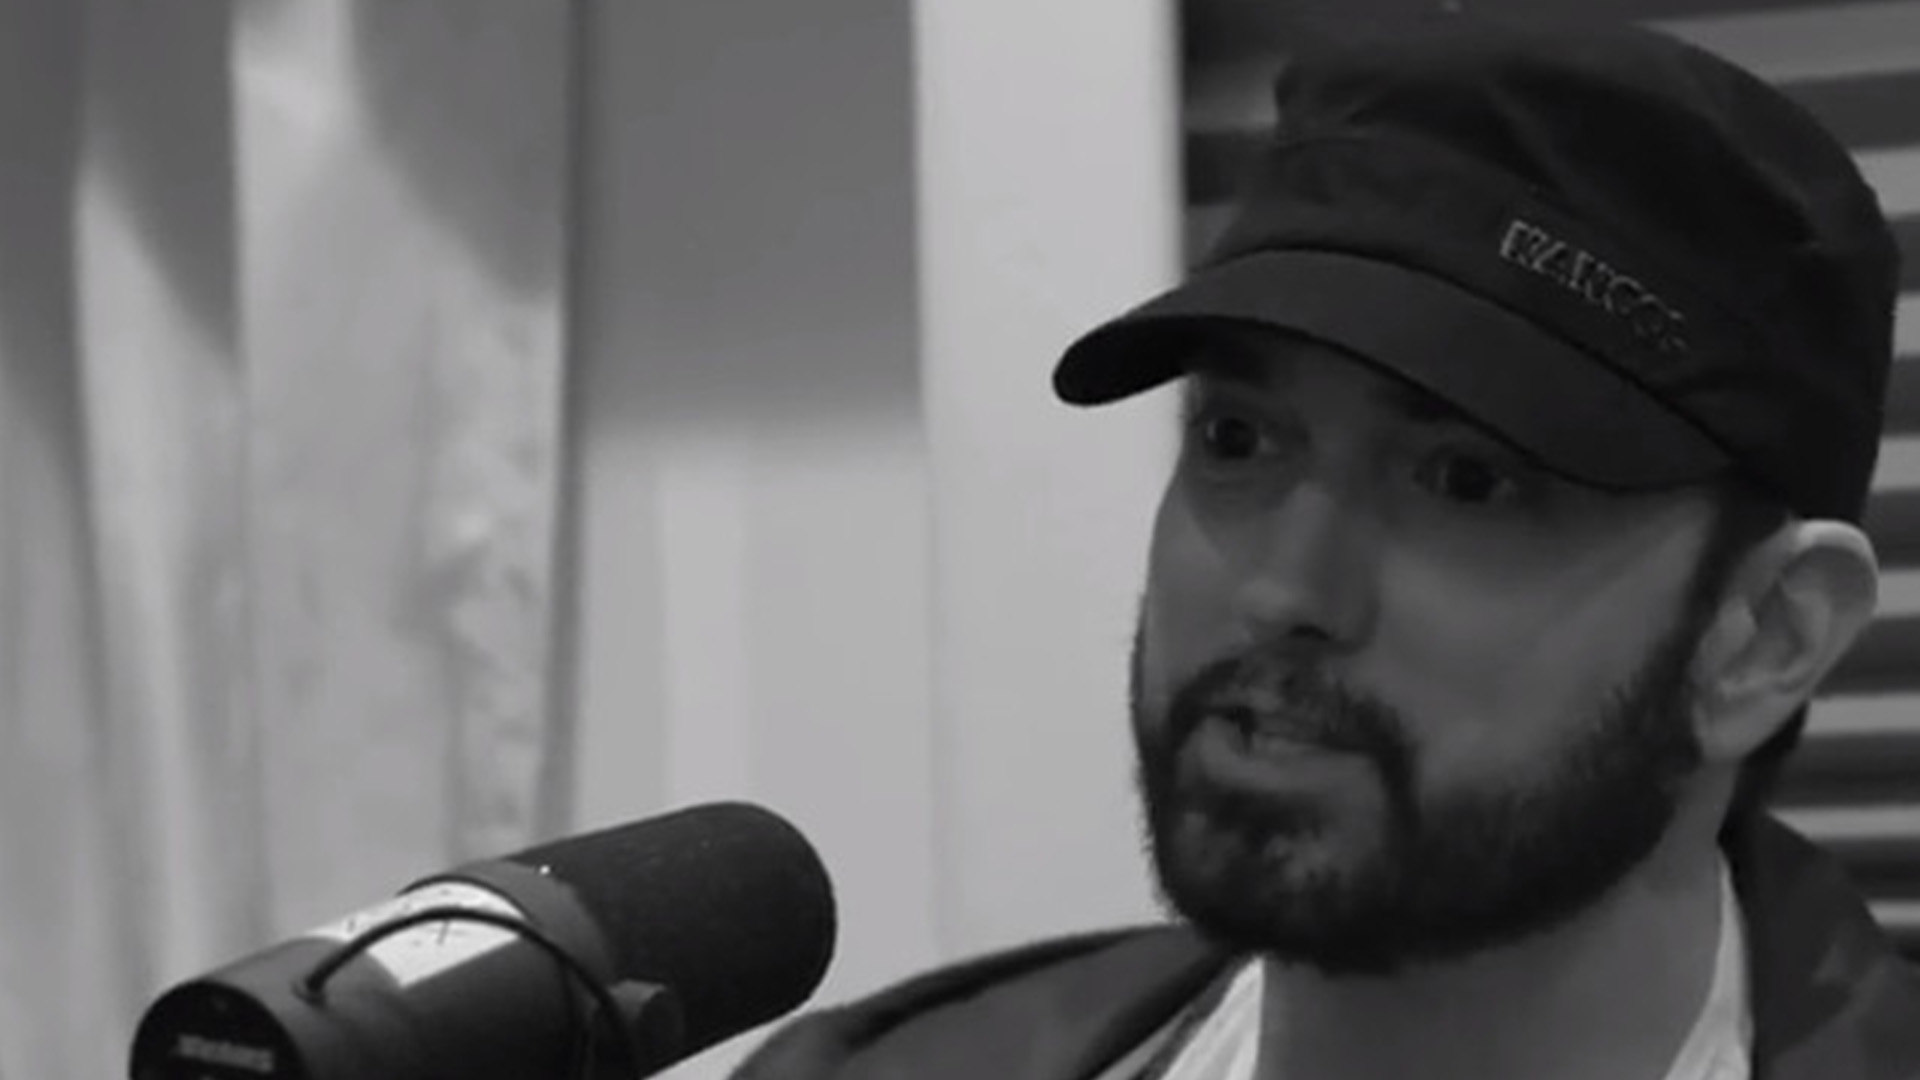 Watch Teaser From Hotboxin' Episode: Eminem complemets Tyson's Knockouts and Champ Status